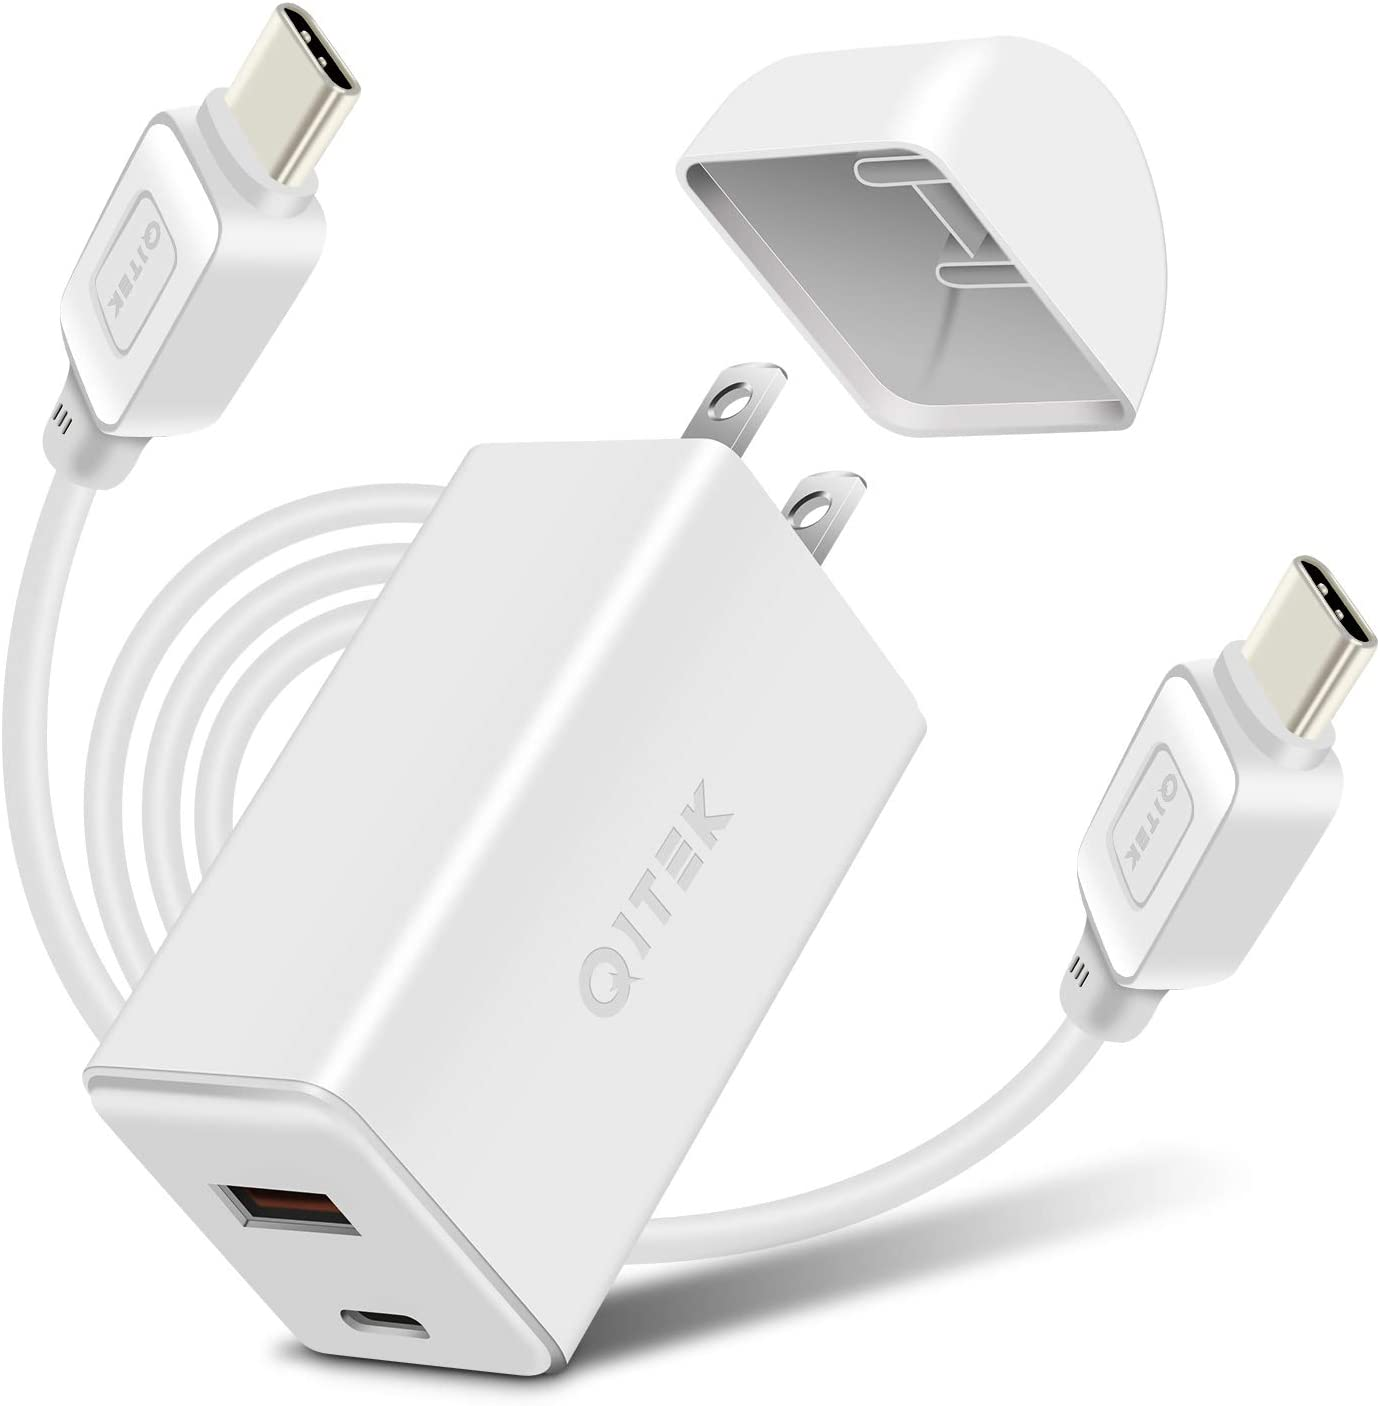 USB Charger, 65W USB C Charger USB A Dual Ports with GaNTech Wall Charger for iPhone, AirPodsPro, Google Pixel3XL, MacBook, World's Smallest Laptop Adapter Compact Acer/Dell/HP&More - White